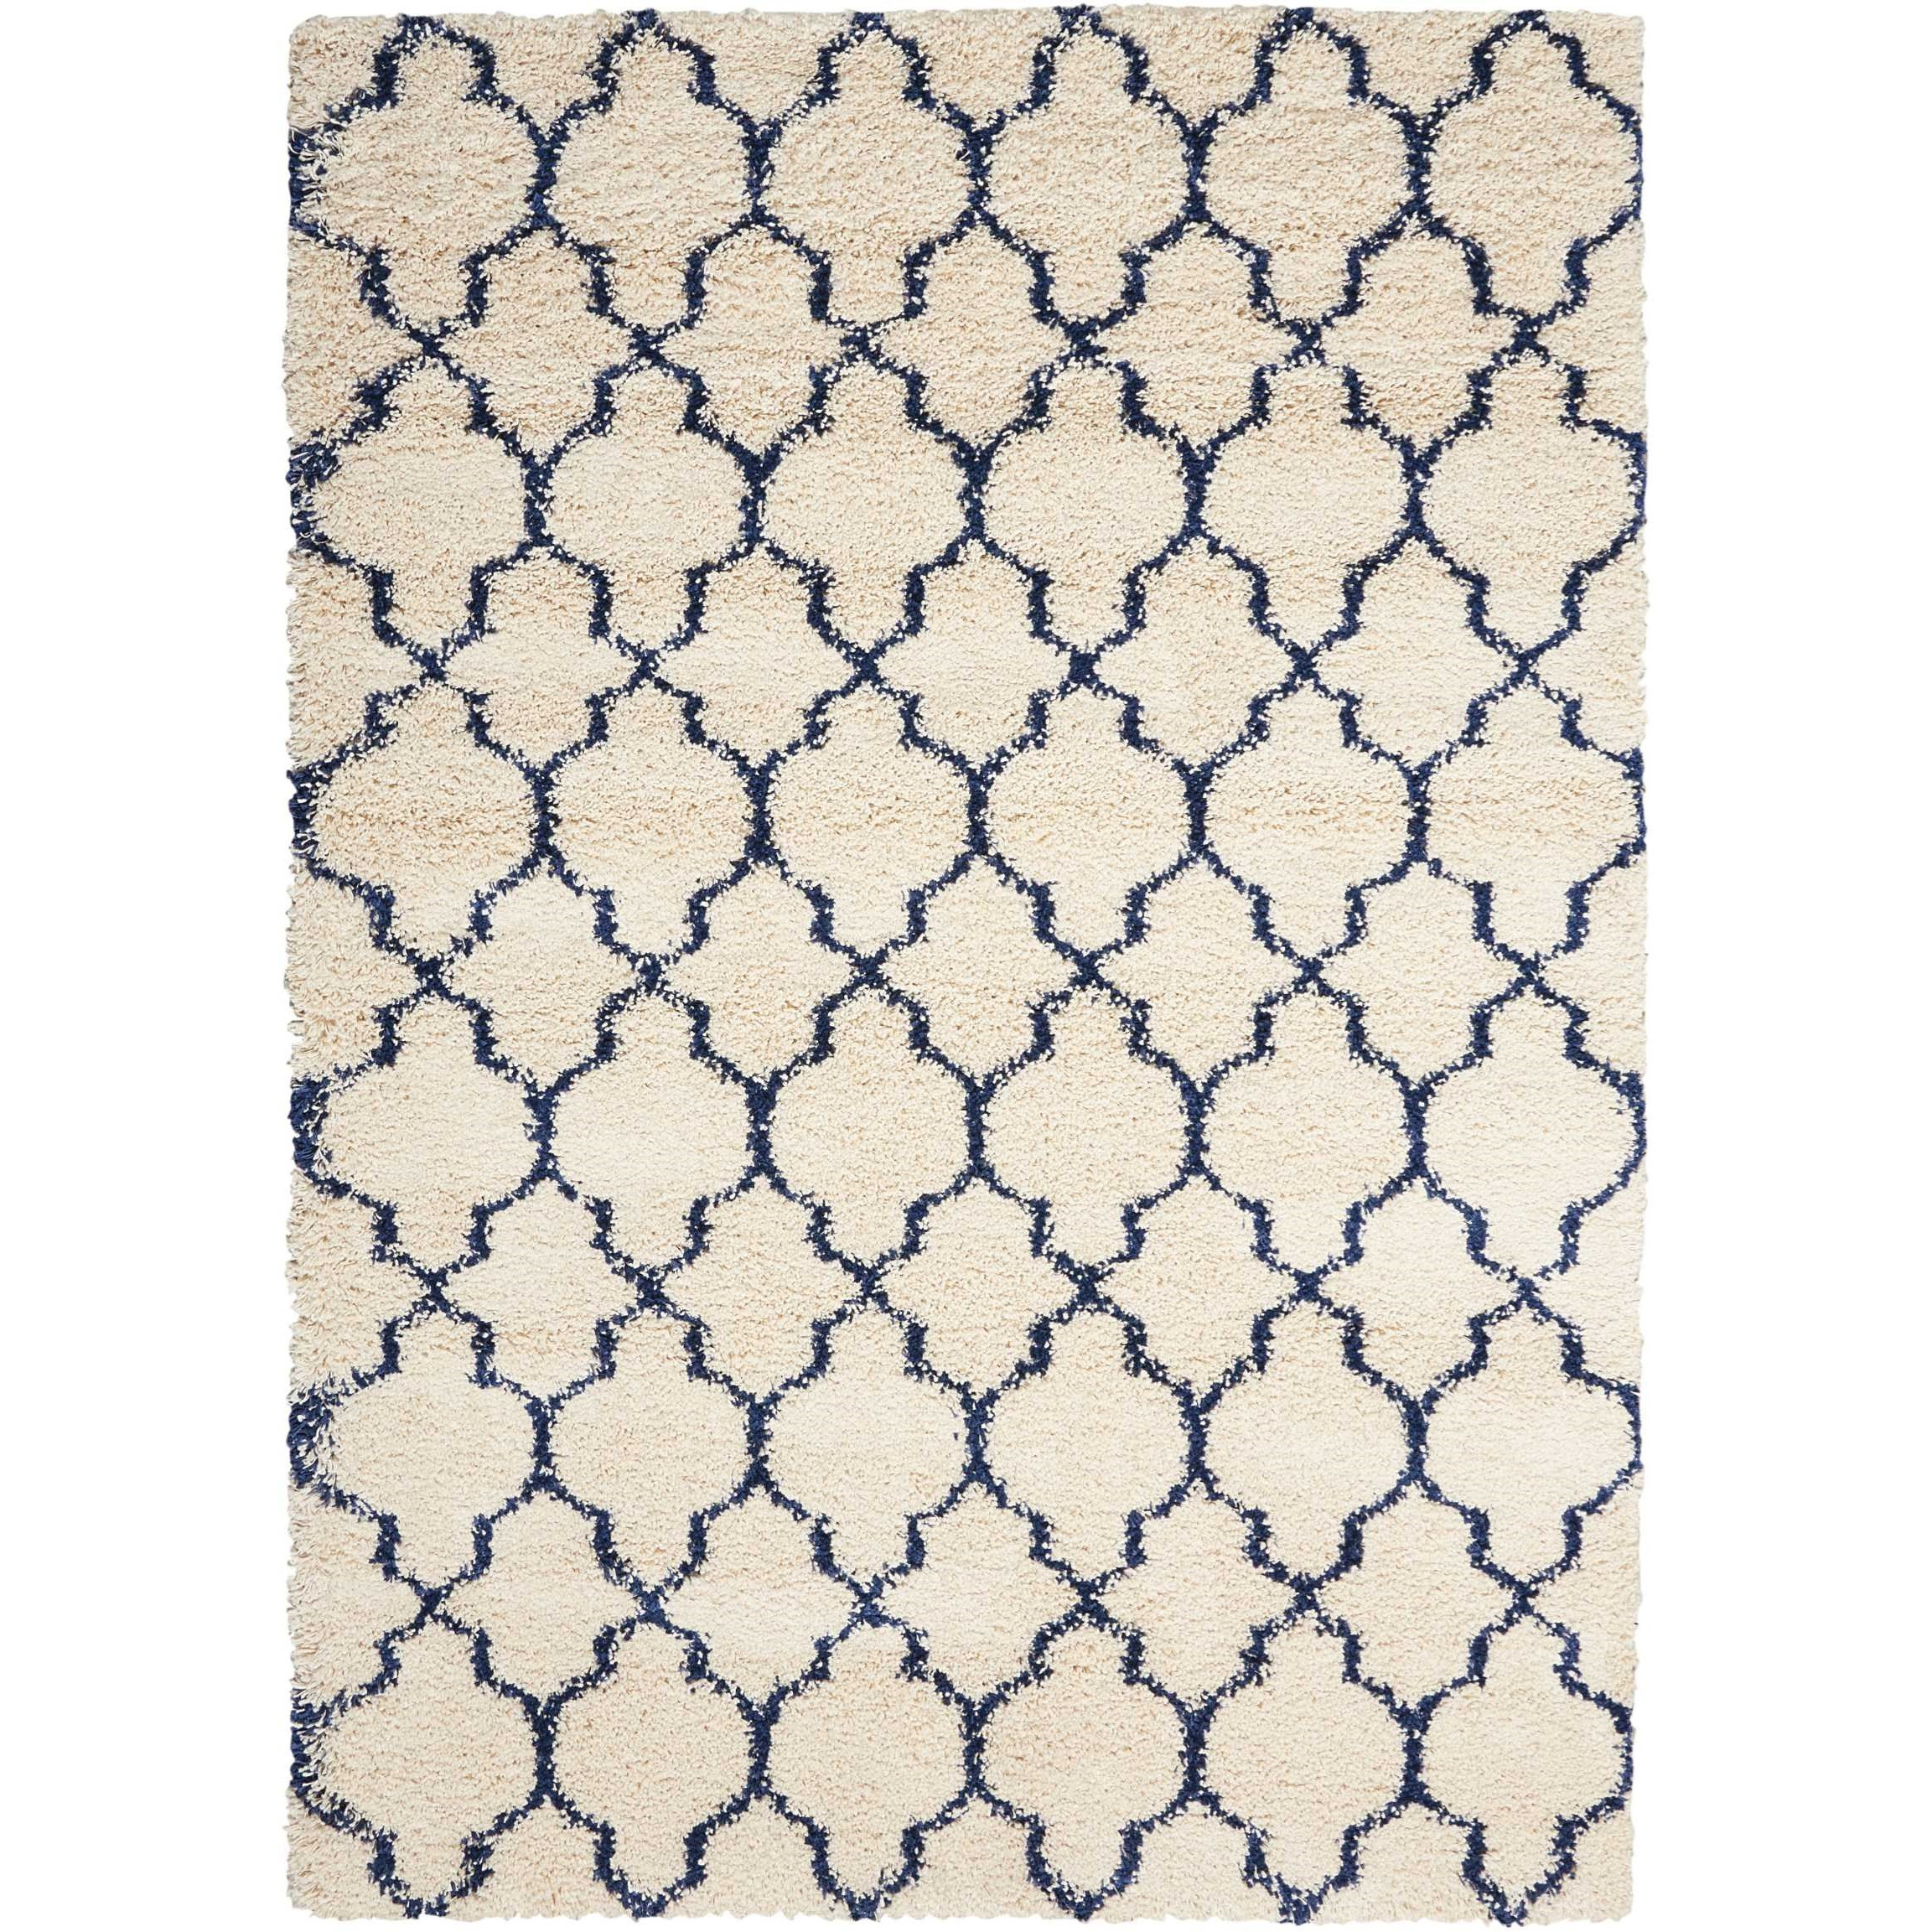 Amore 10' x 13' Ivory/Blue Rectangle Rug by Nourison at Sprintz Furniture